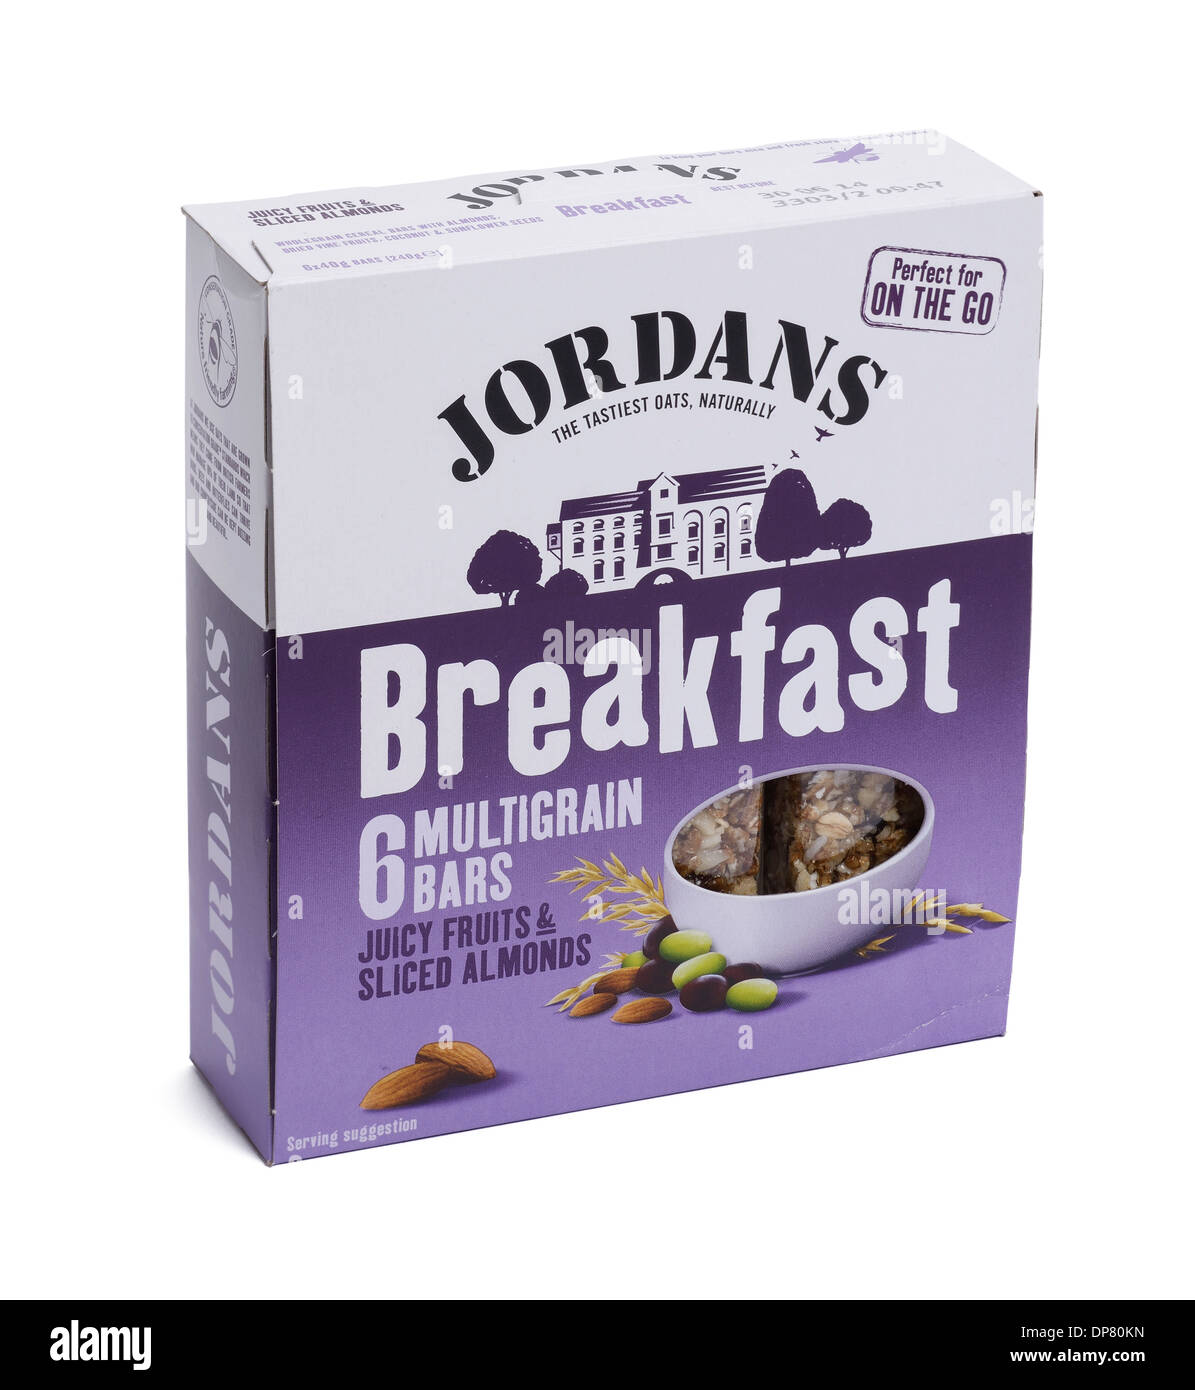 Box of Jordans breakfast cereal bars - Stock Image